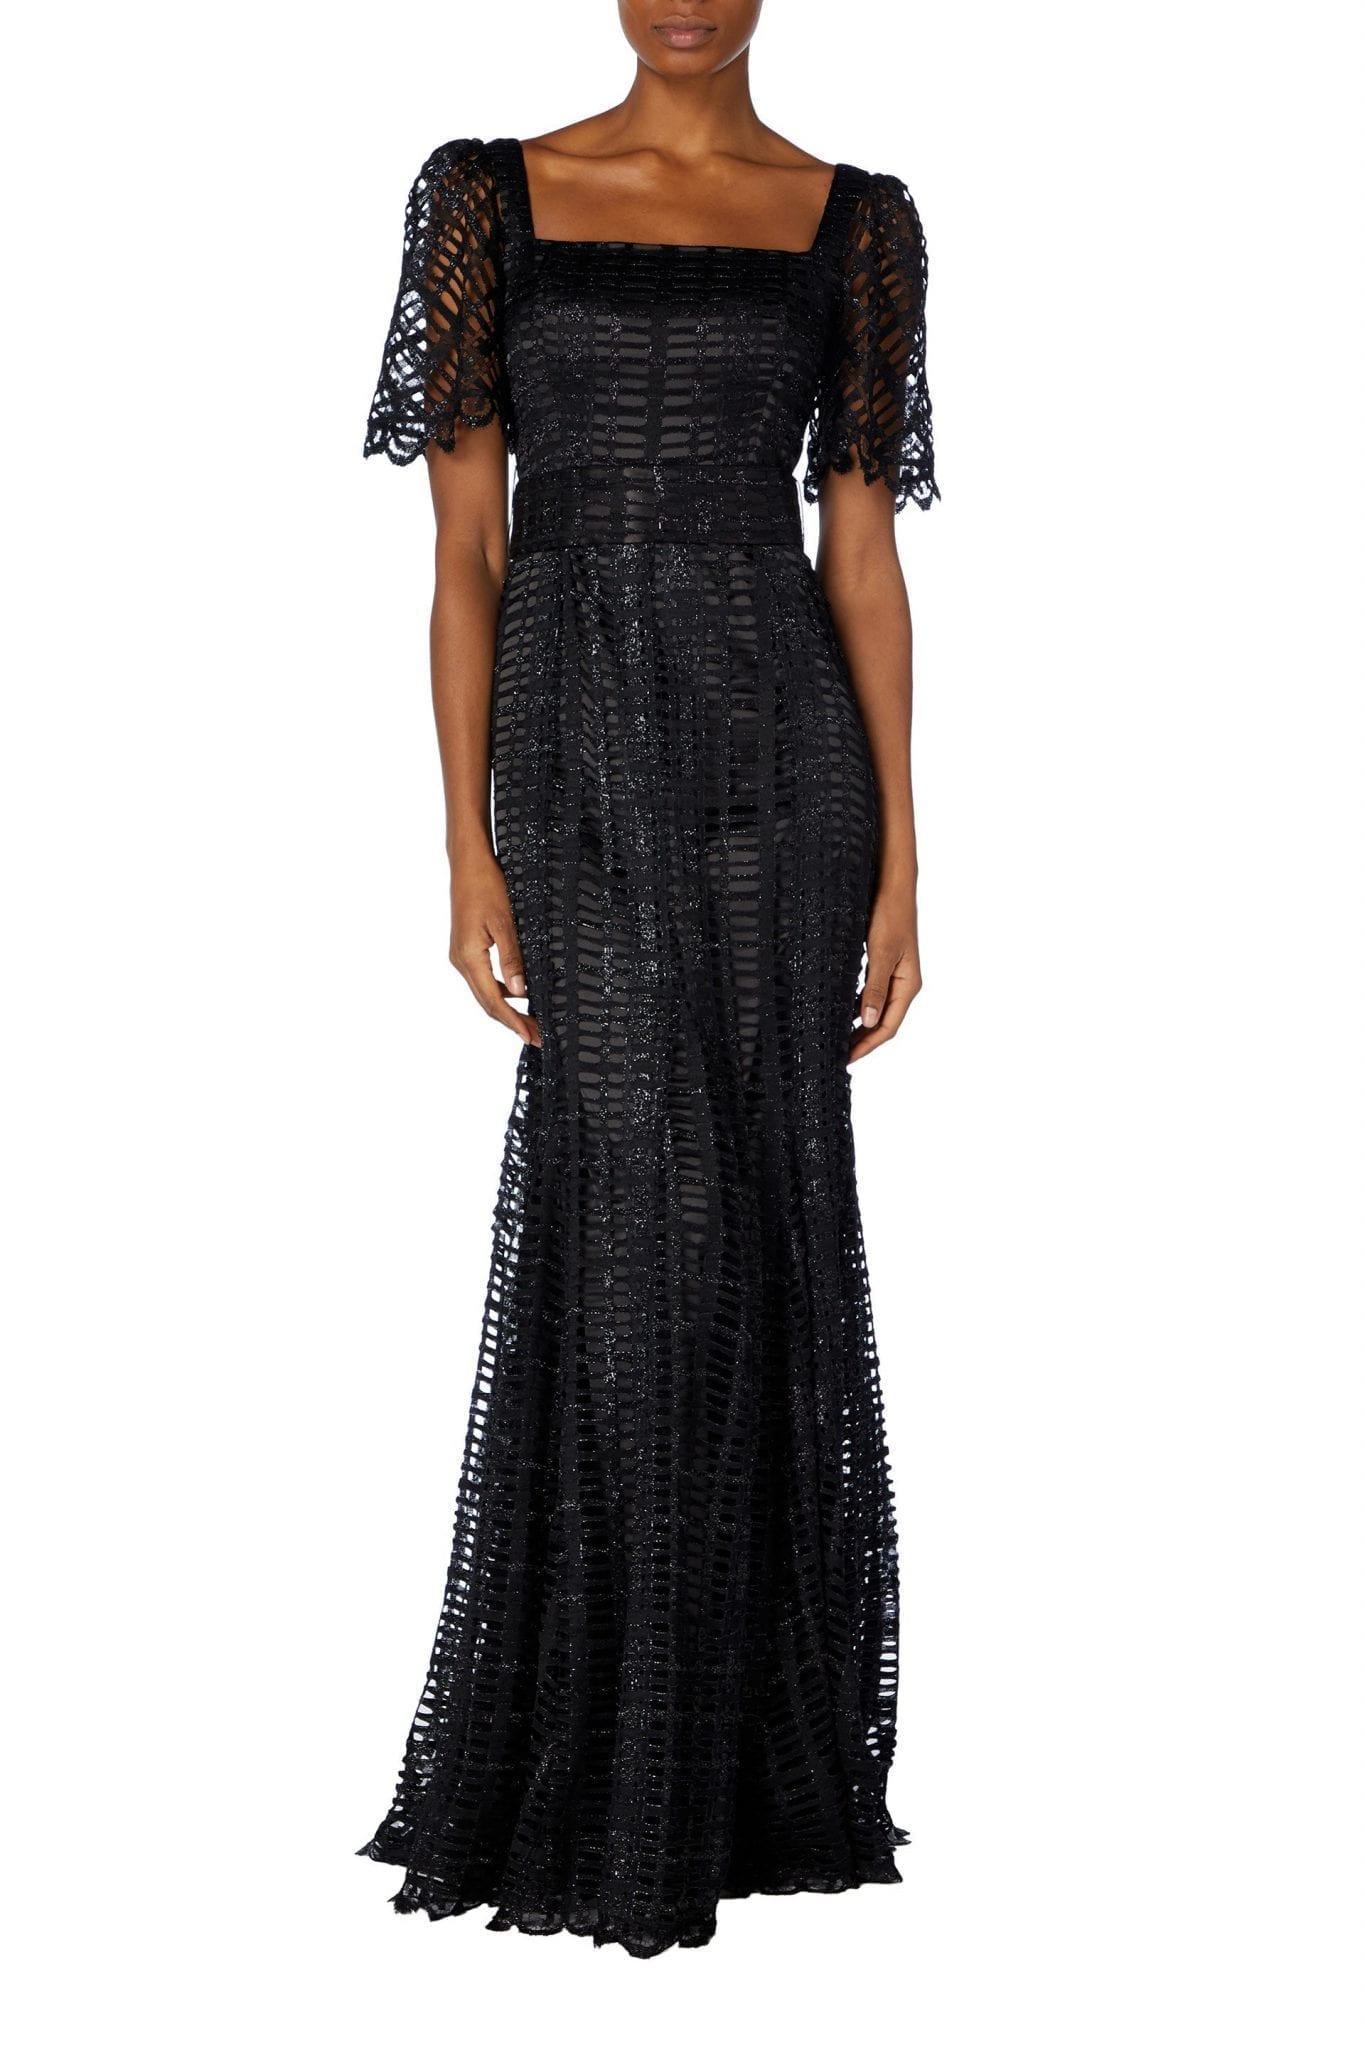 GOAT FASHION Jolene Ladder Lace Gown